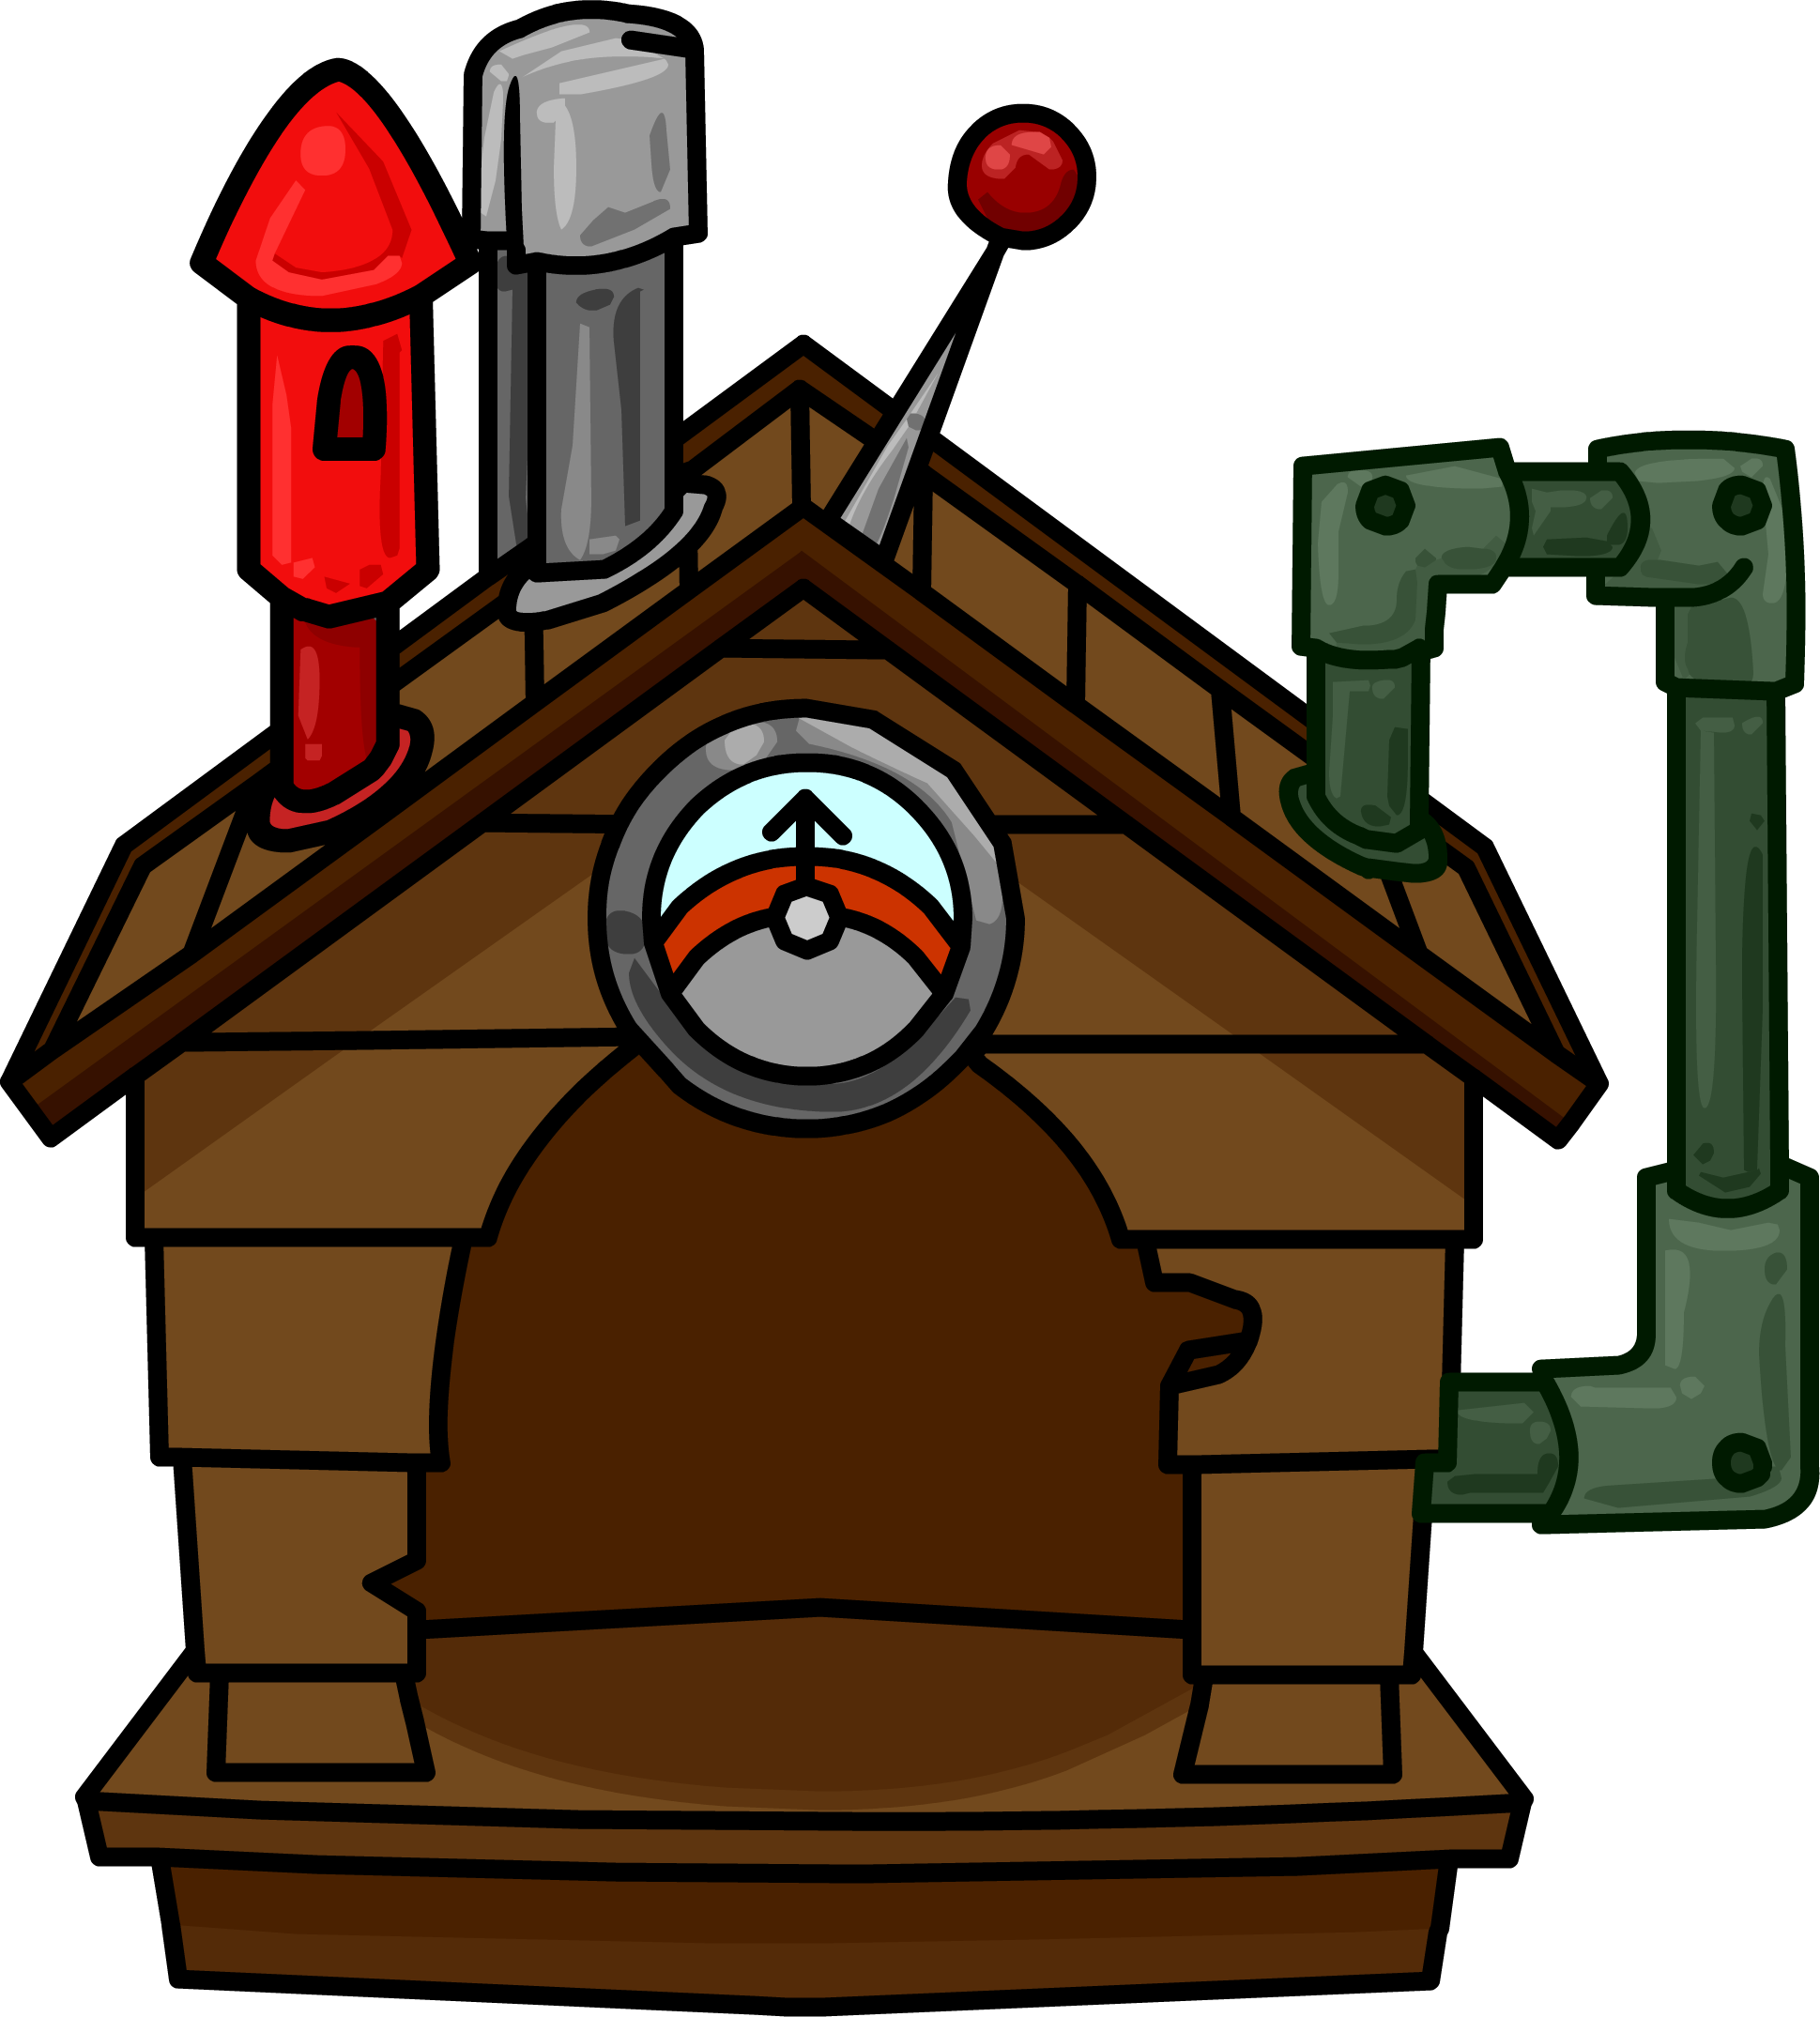 Brown Puffle House (ID 665)